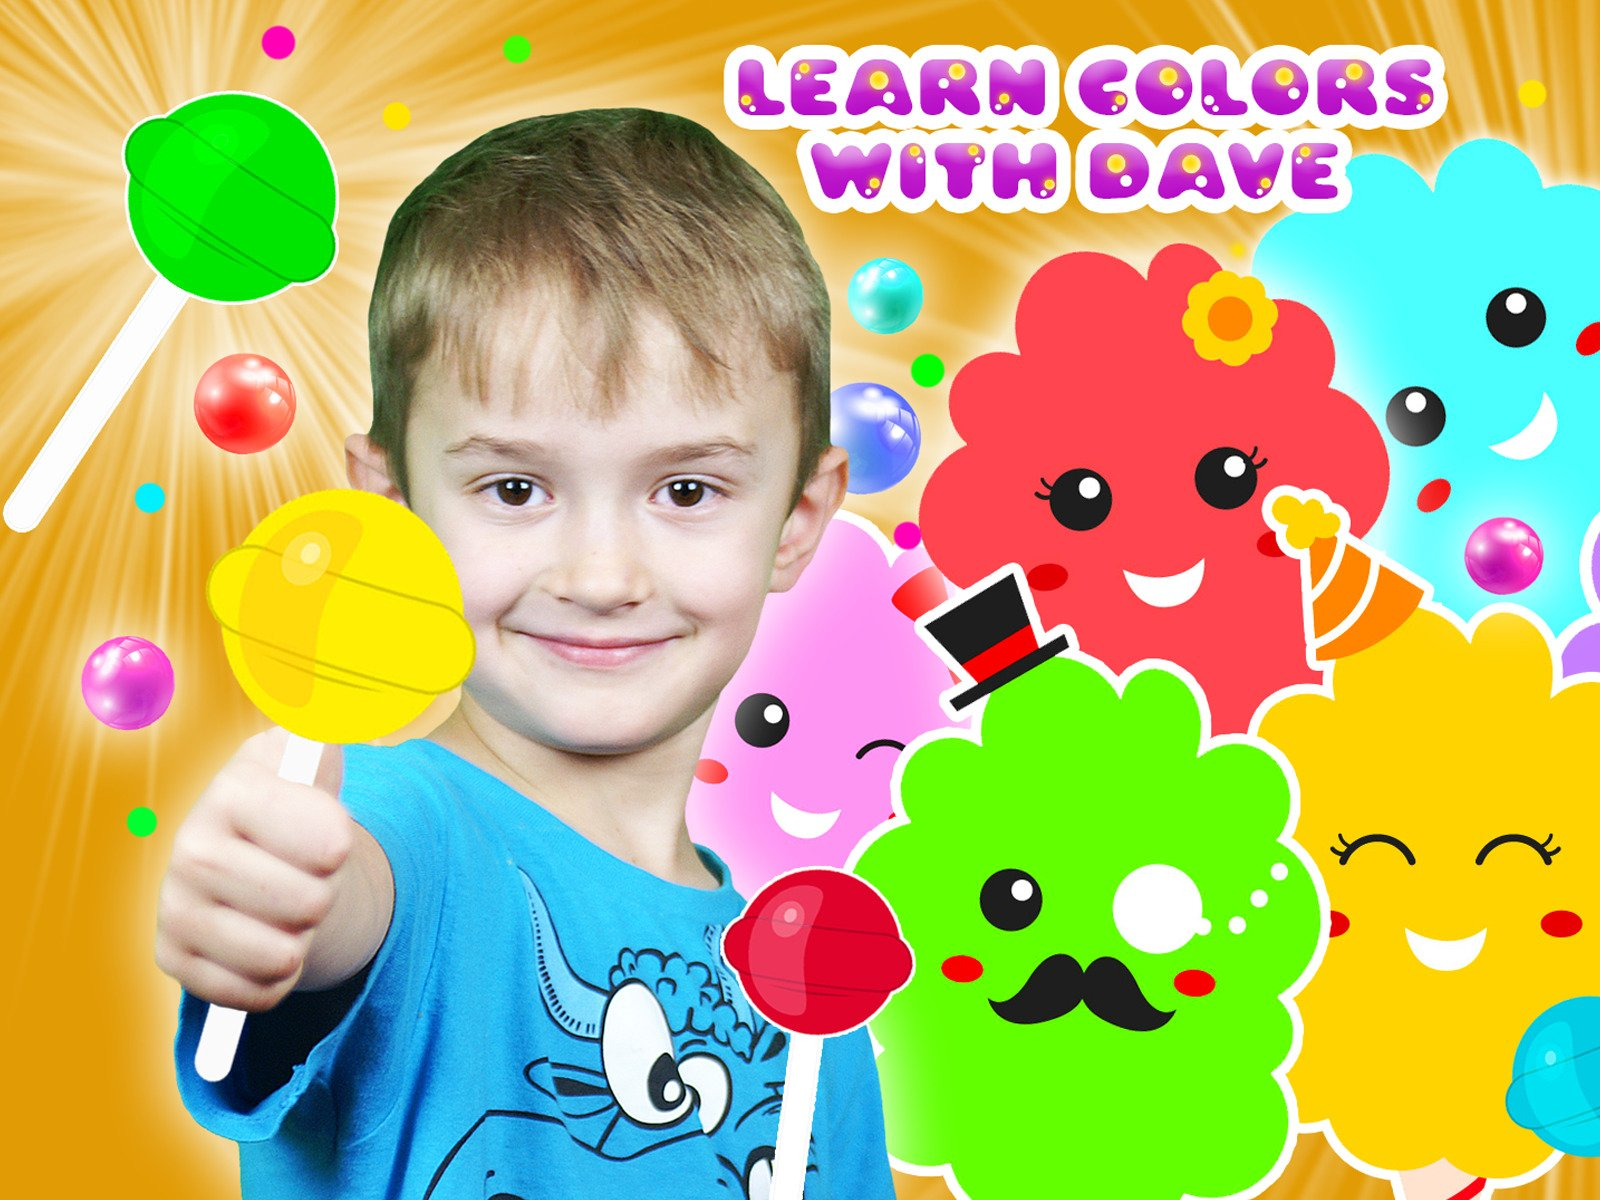 Learn Colors with Dave - Season 1